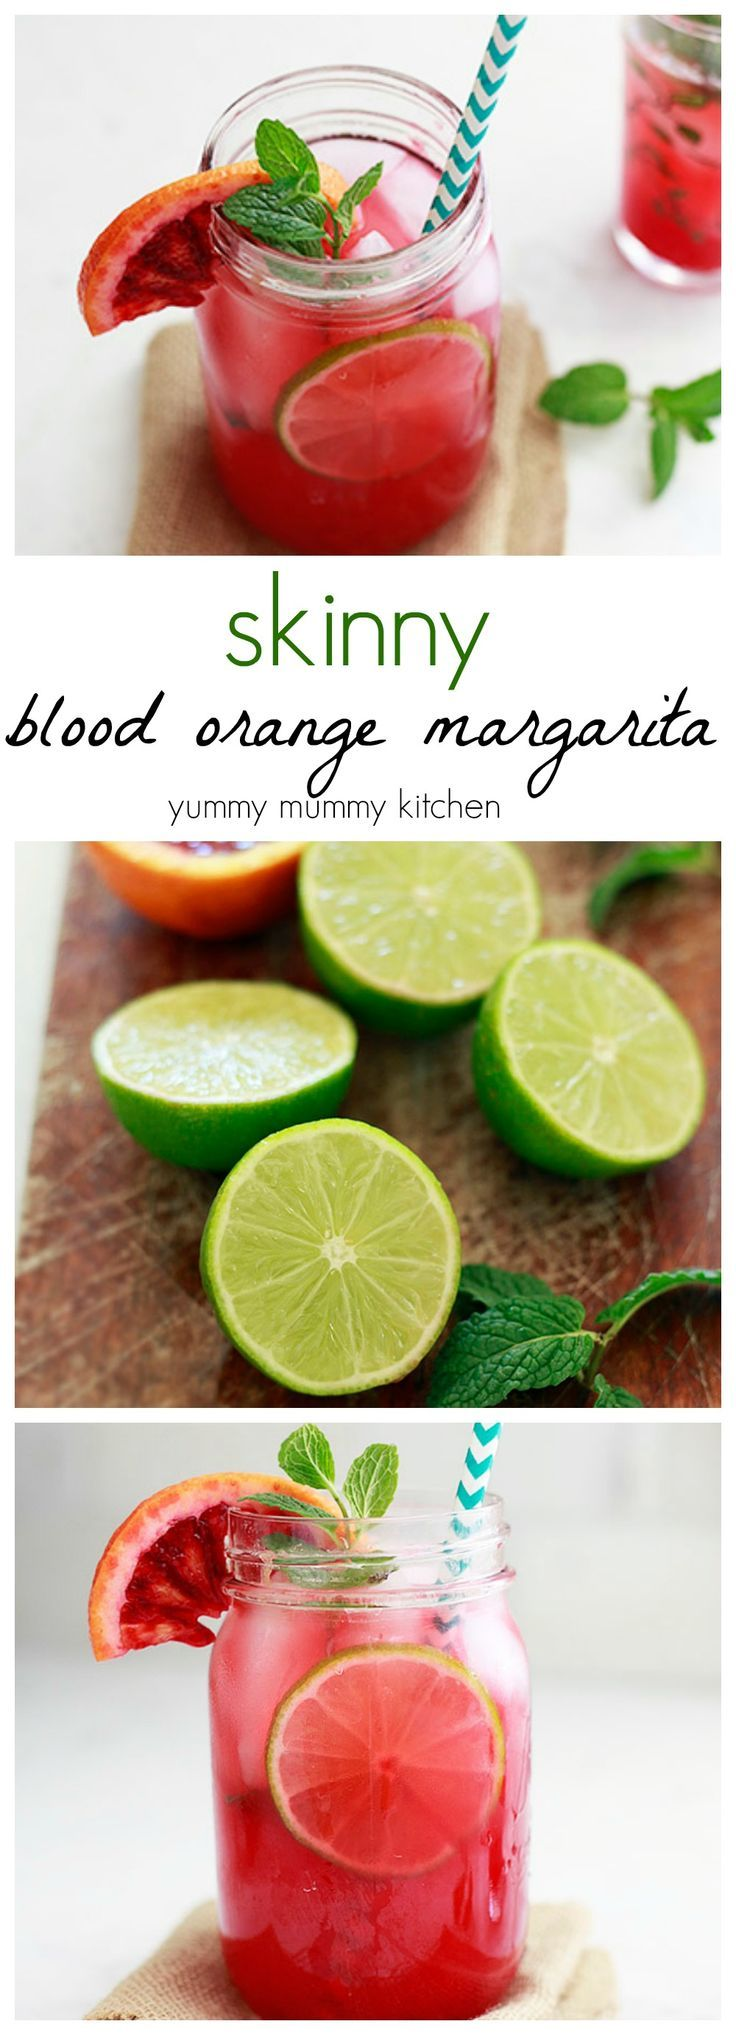 Skinny Blood Orange Margarita recipe with no simple syrup or refined sugars. This is so refreshing and tasty!